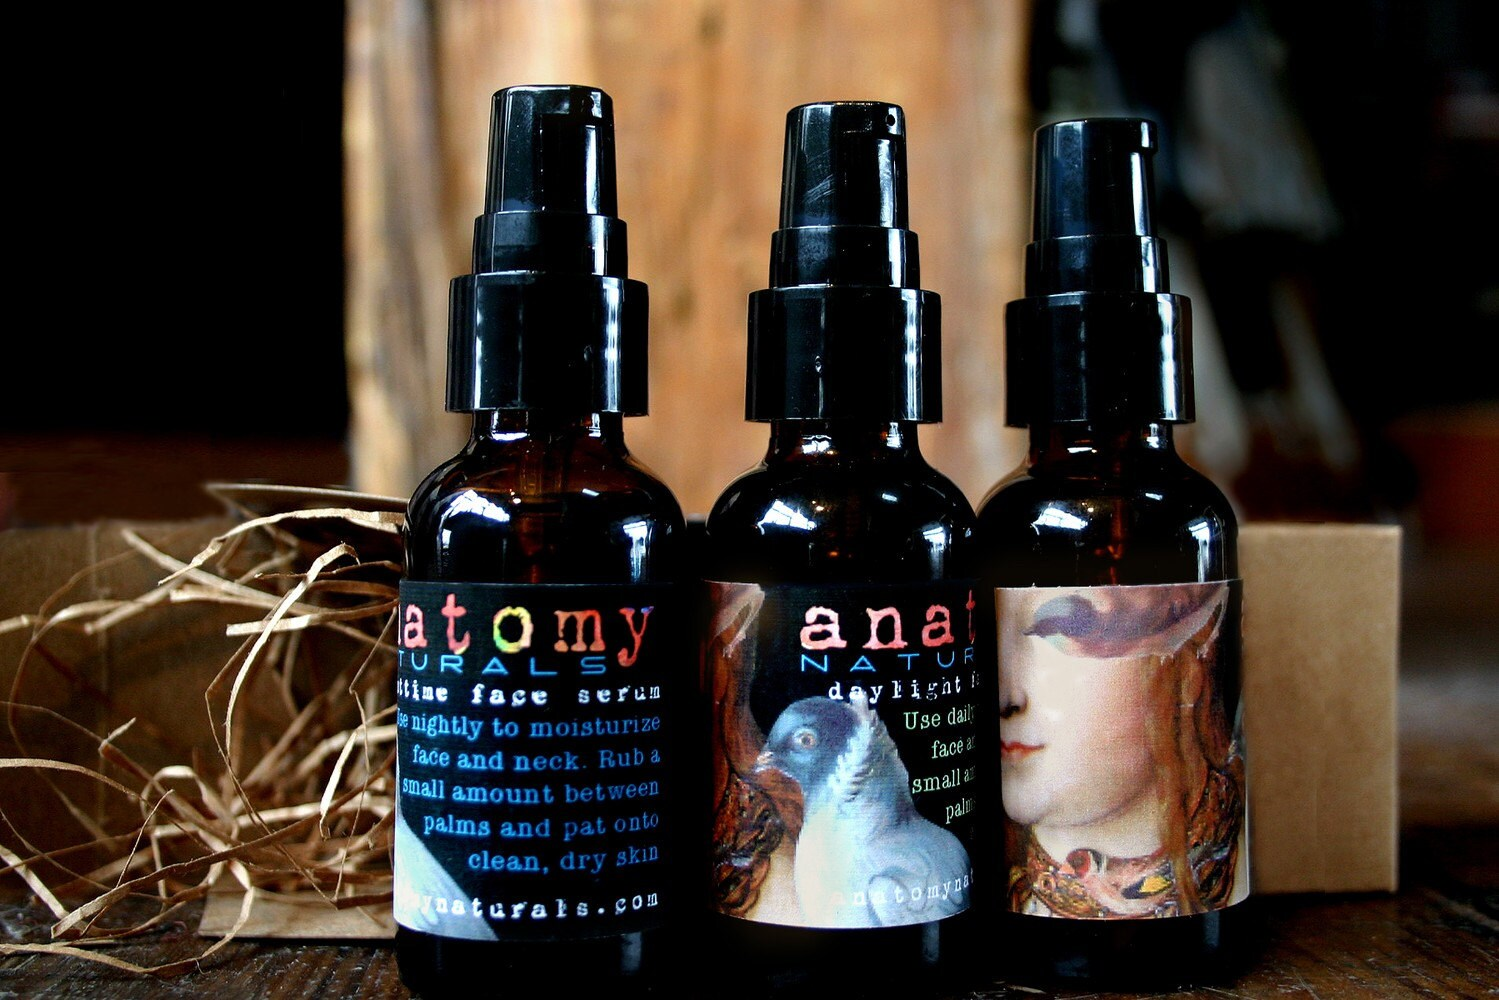 Natural face serum for day and night with nourishing oils and a pretty art collage label